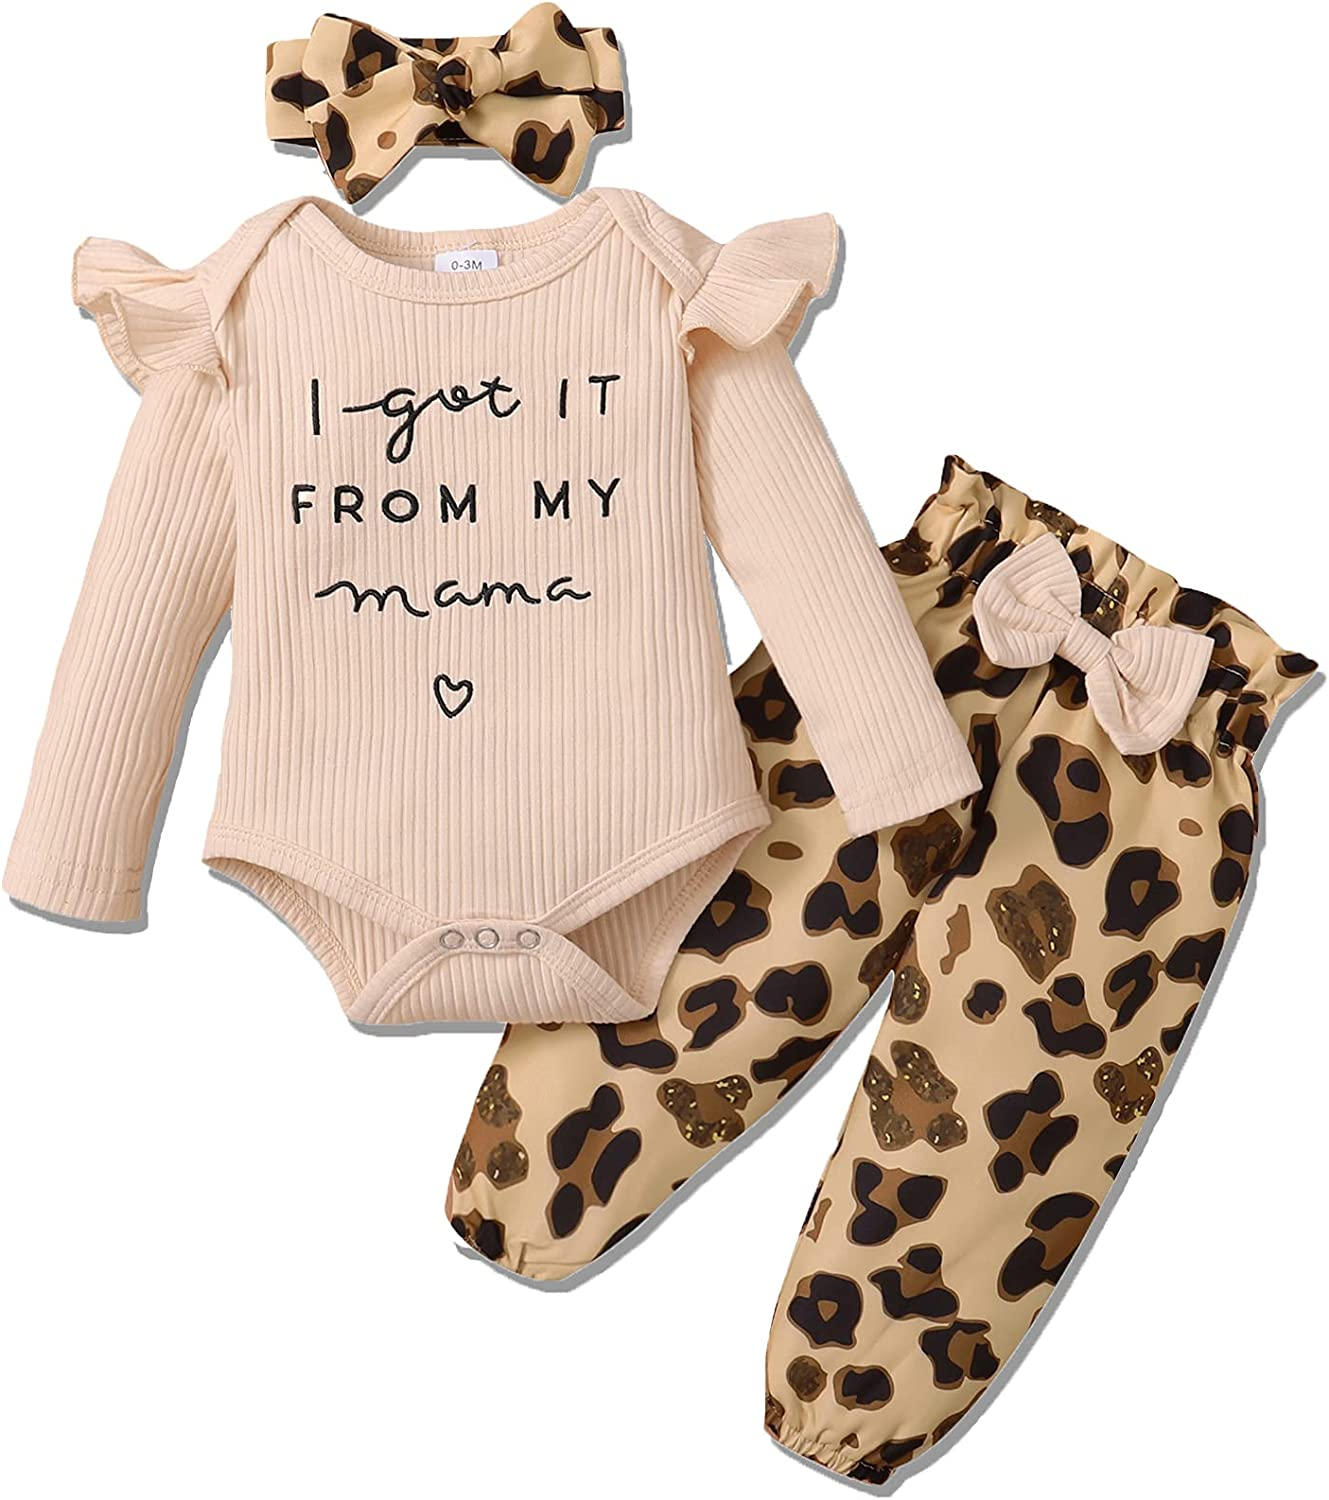 Newborn Baby Girl Clothes, Infant Girl Outfits Long Sleeve Ruffle Romper + Floral Pants + Headband Set…